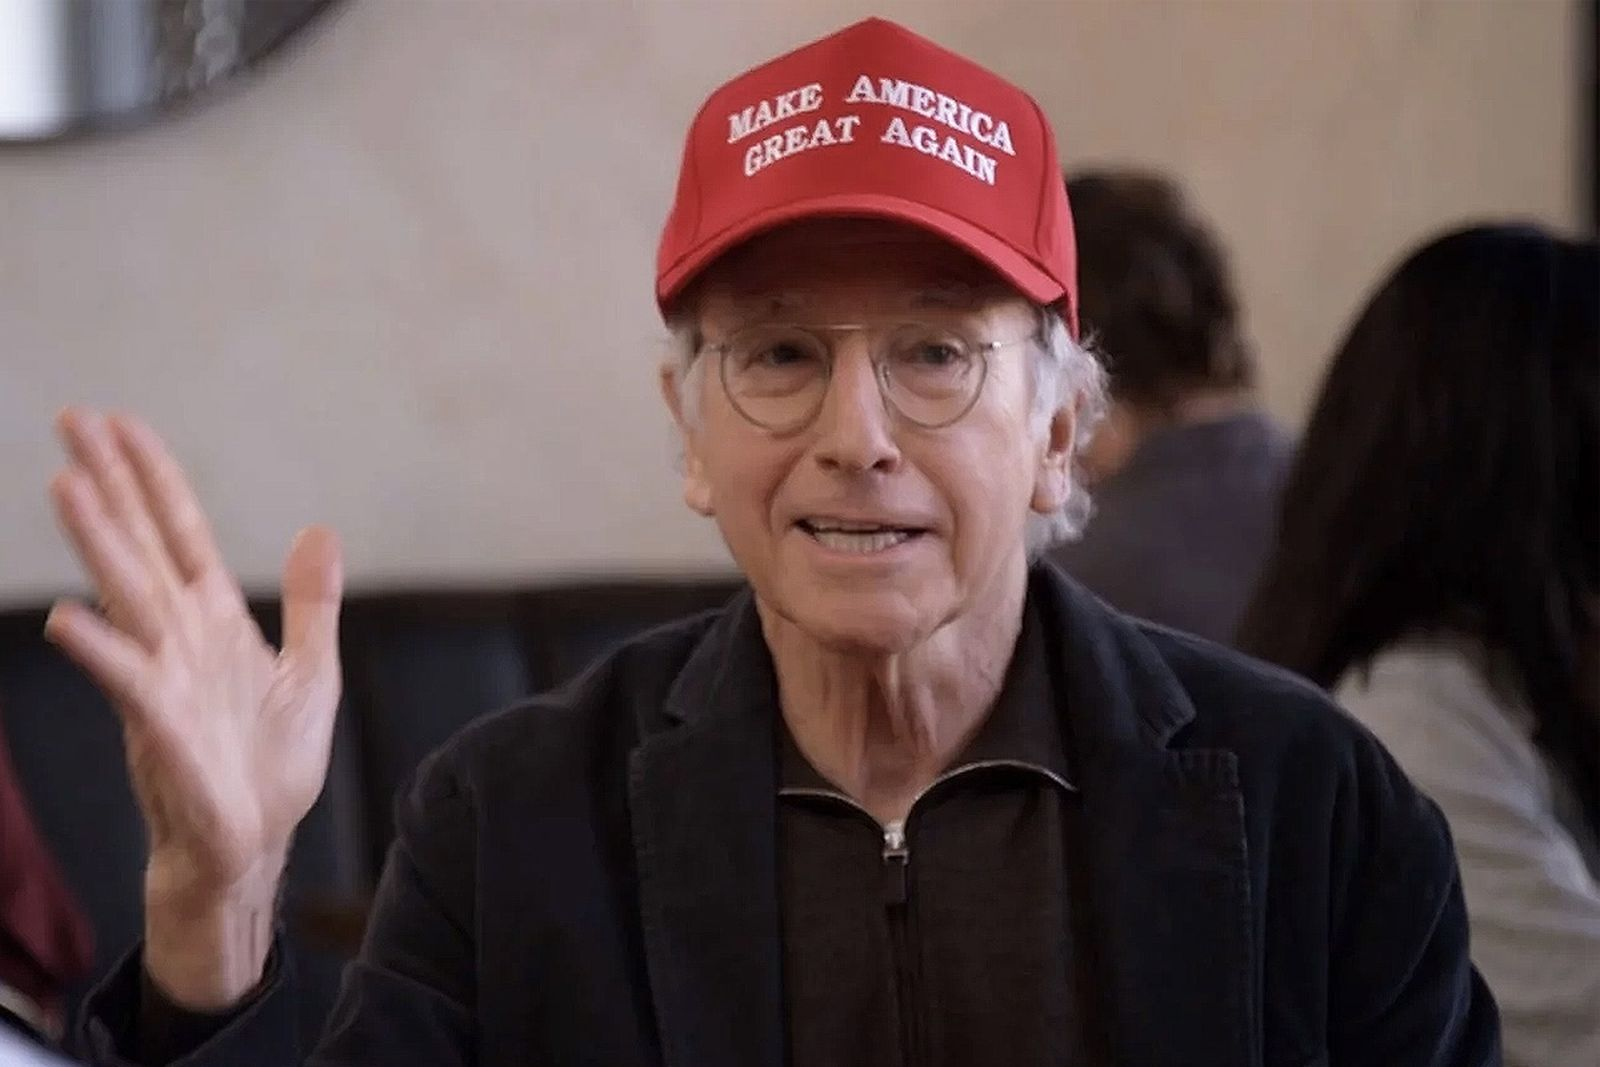 trump-larry-david-curb-your-enthusiam-maga-hat-01